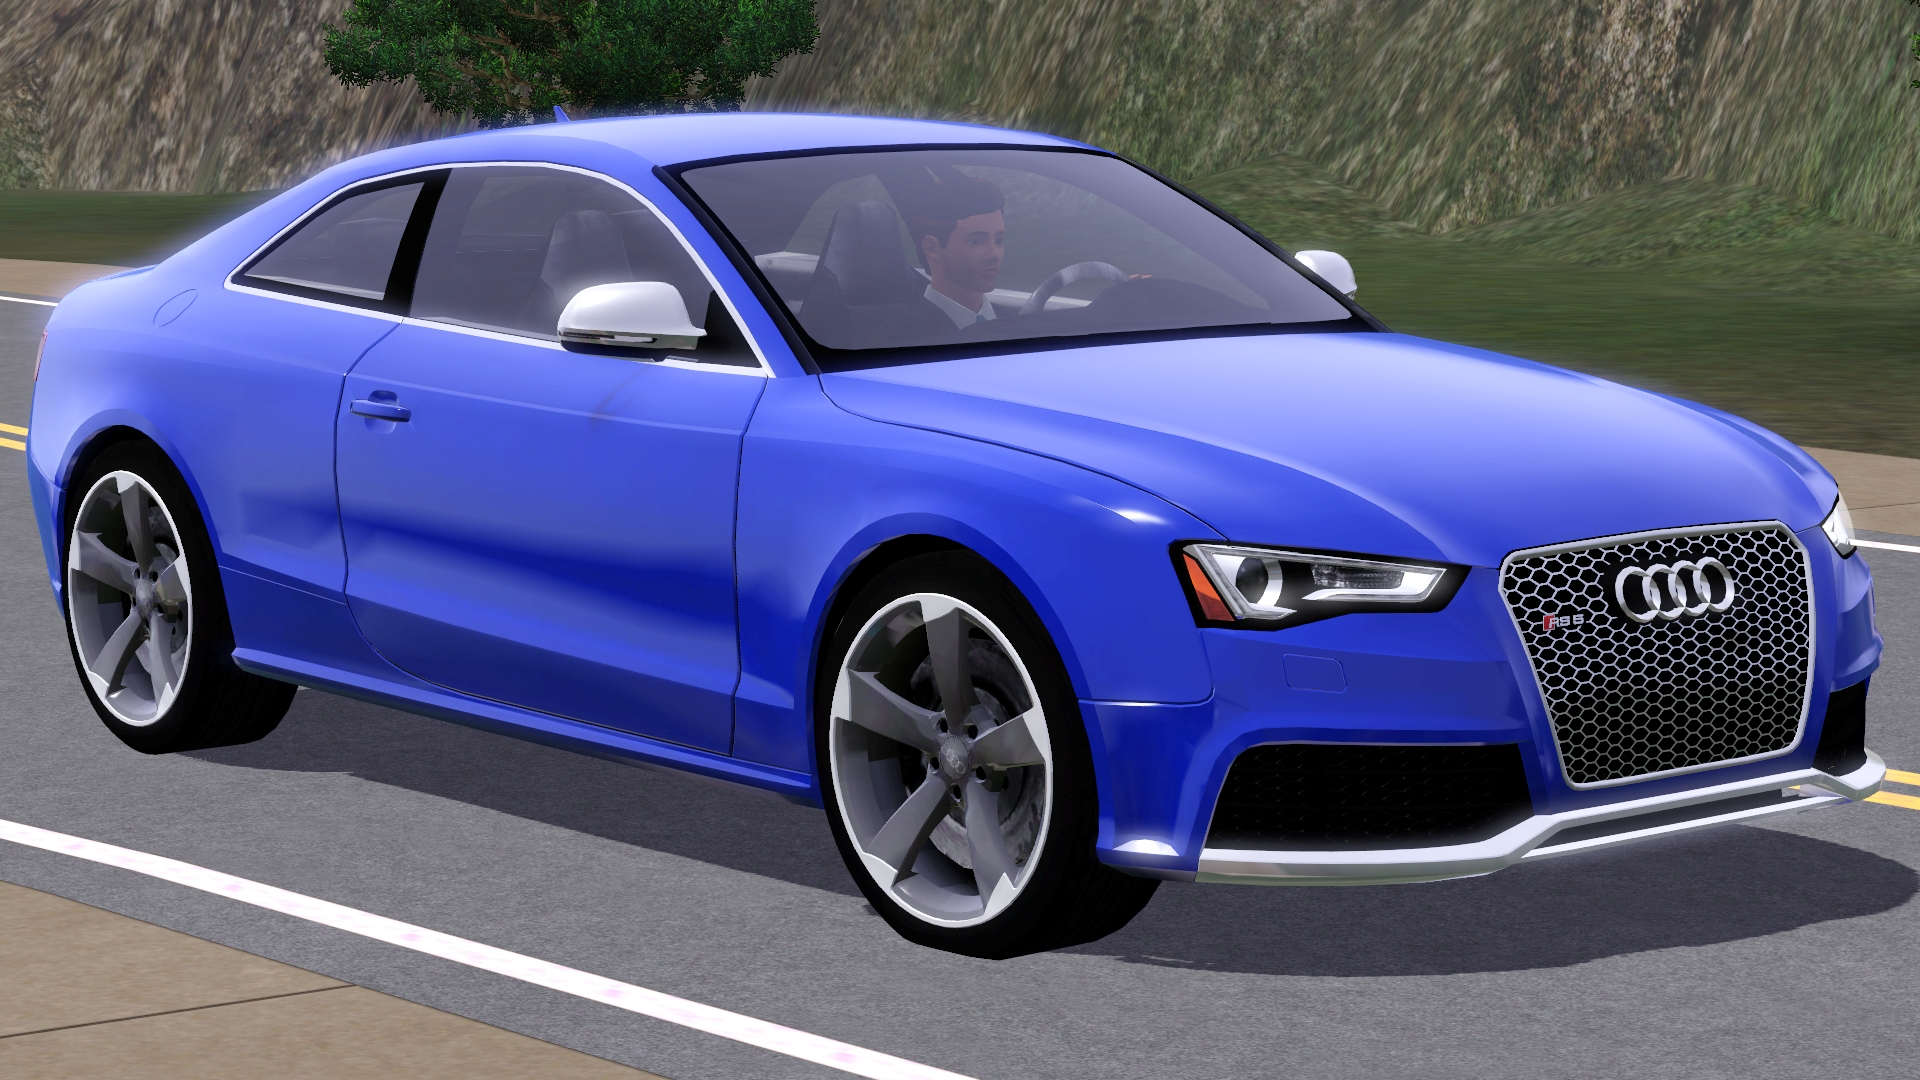 Sims 3   2013 Audi RS5 HD Wallpaper